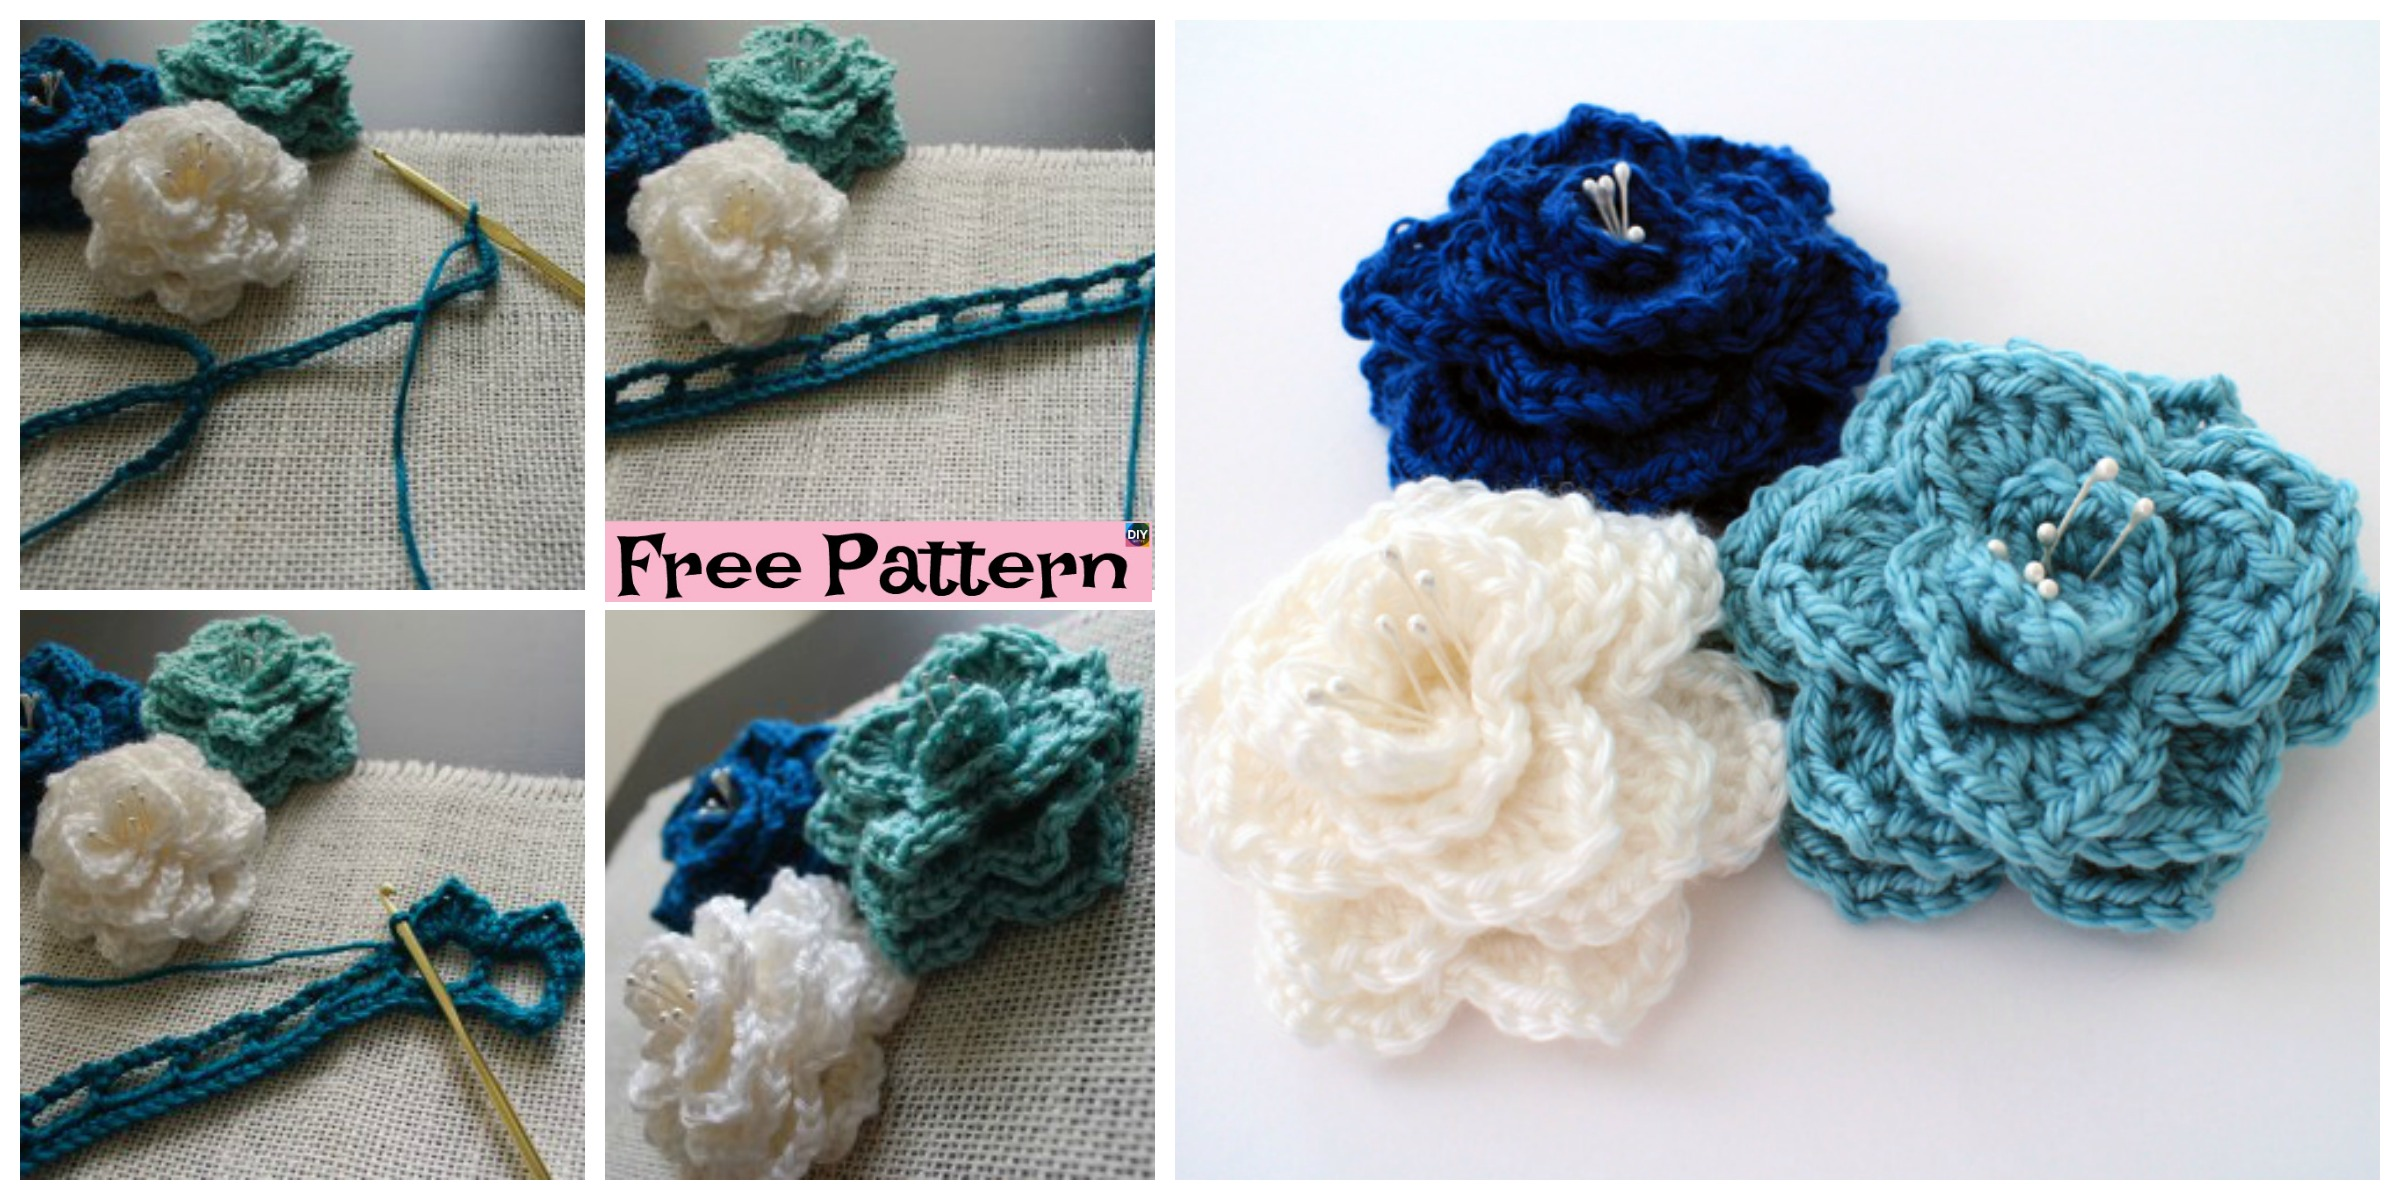 Crochet Crocodile Stitch Flower – Free Pattern